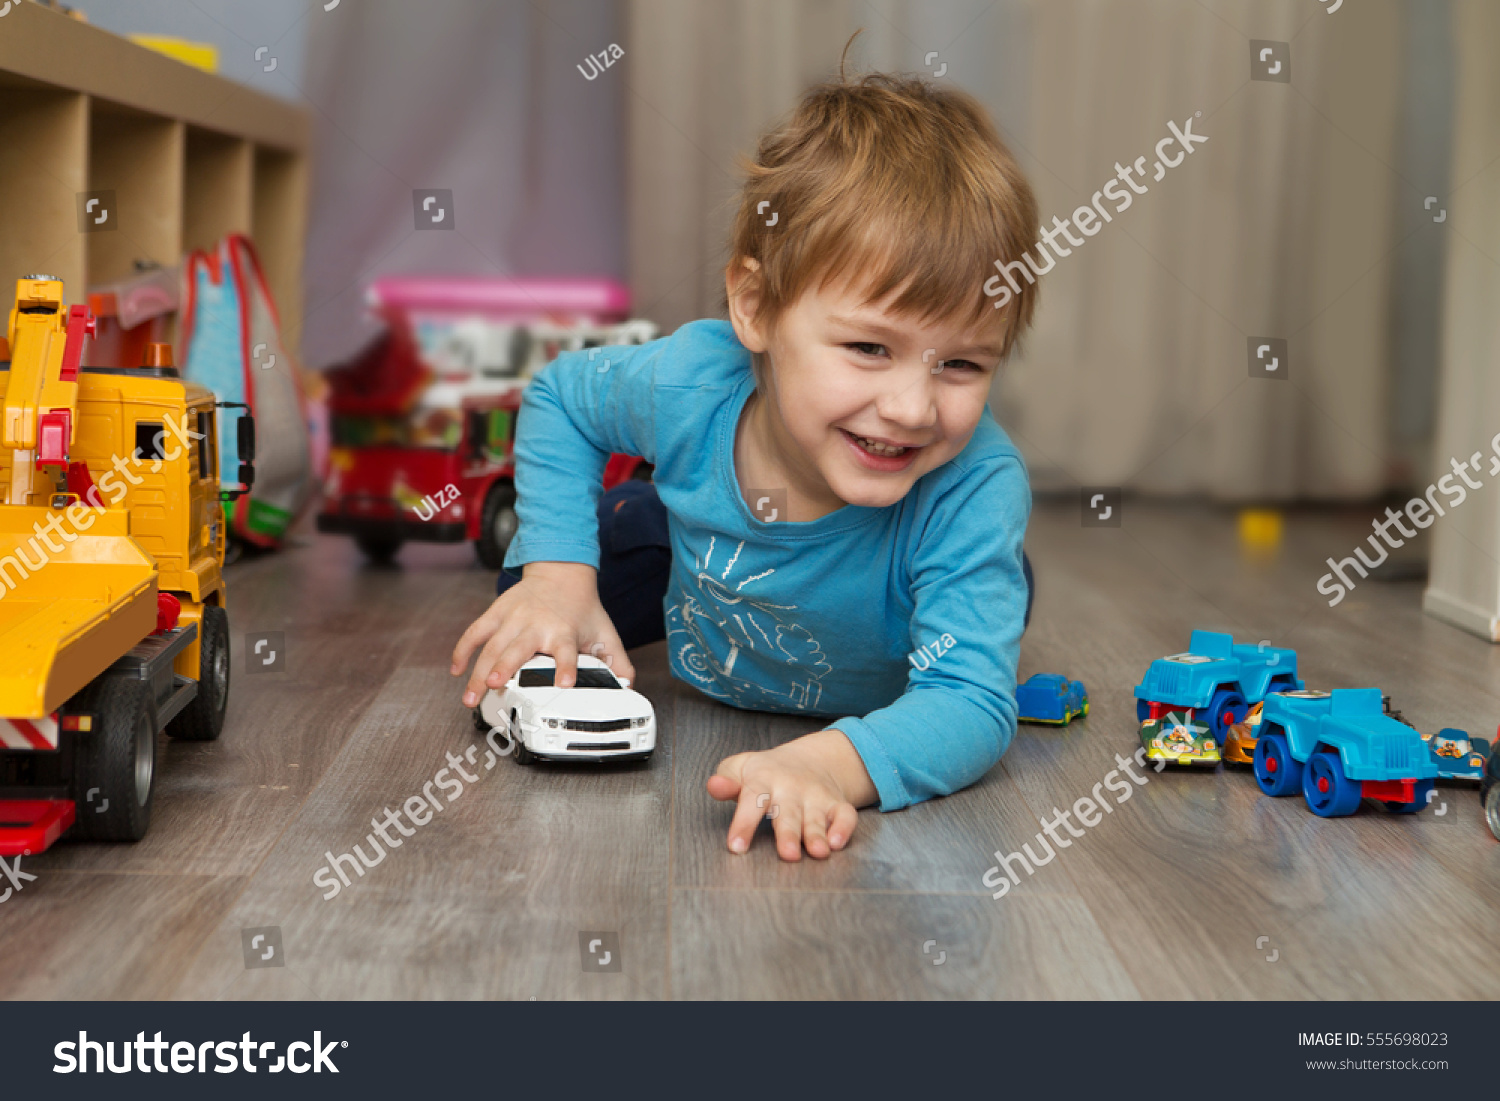 Little Boy With Toy Car : Little boy plays toy car home stock photo